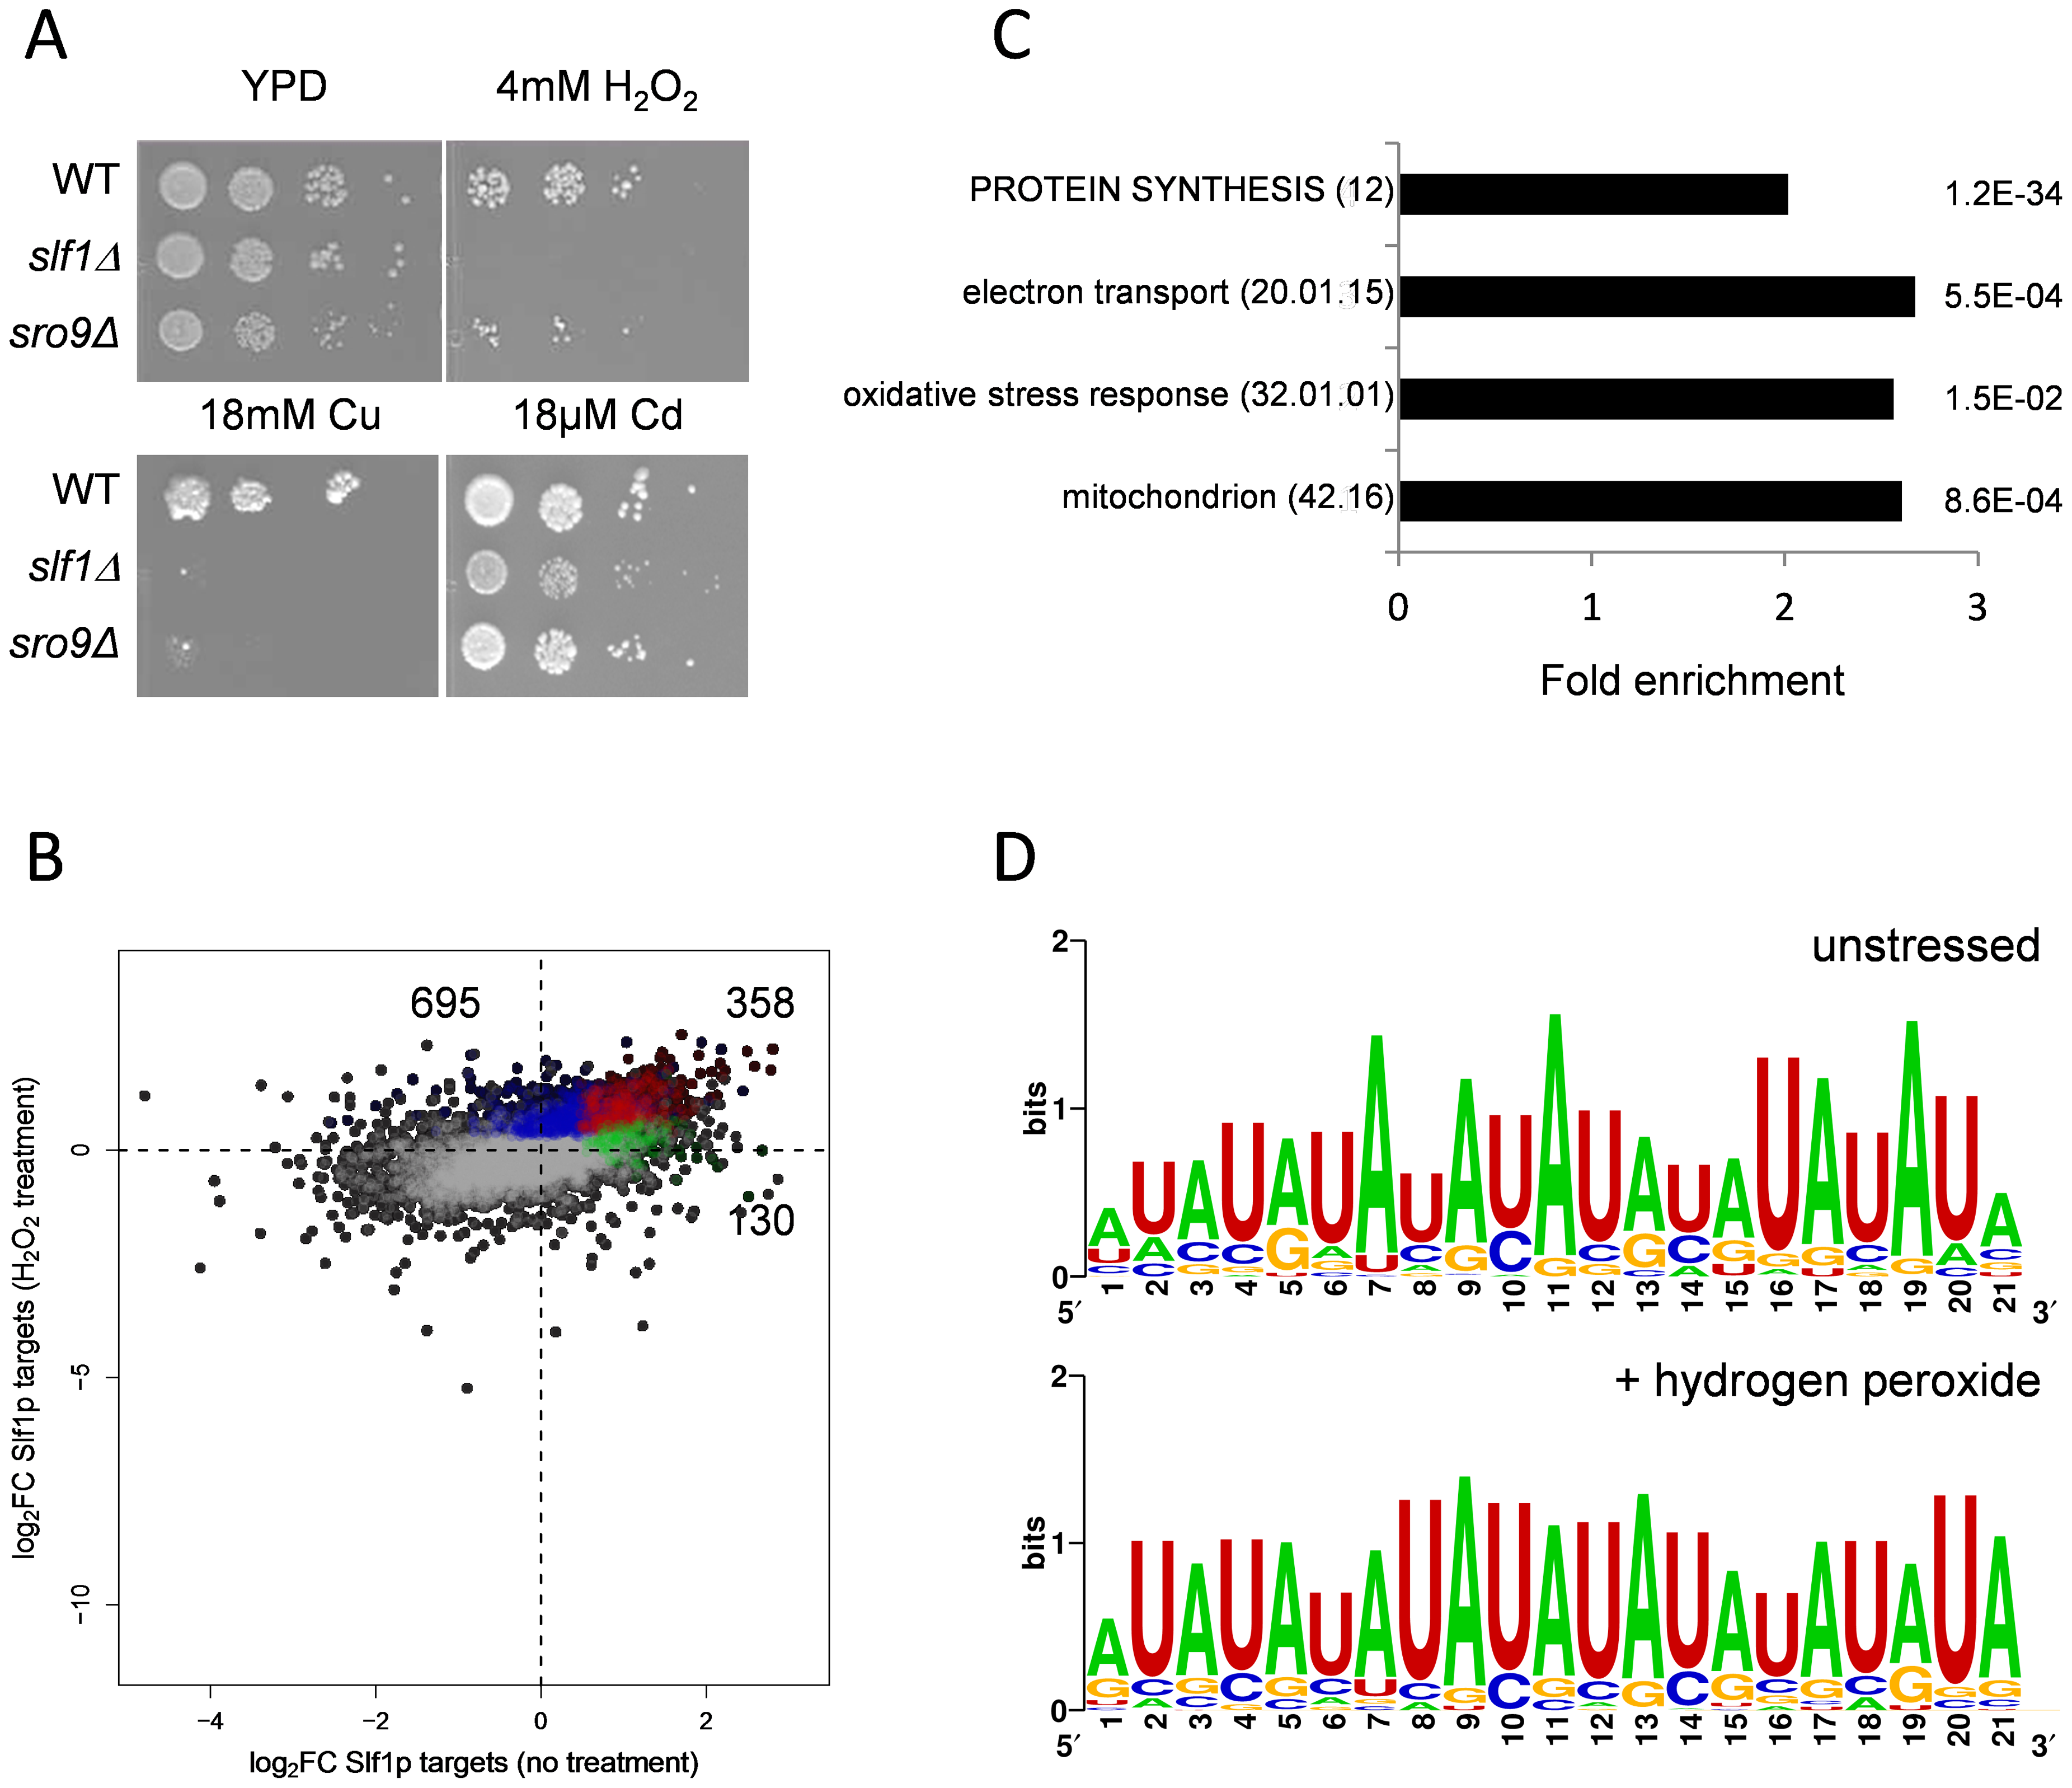 Slf1p and Sro9p are required for growth under oxidative stress conditions.